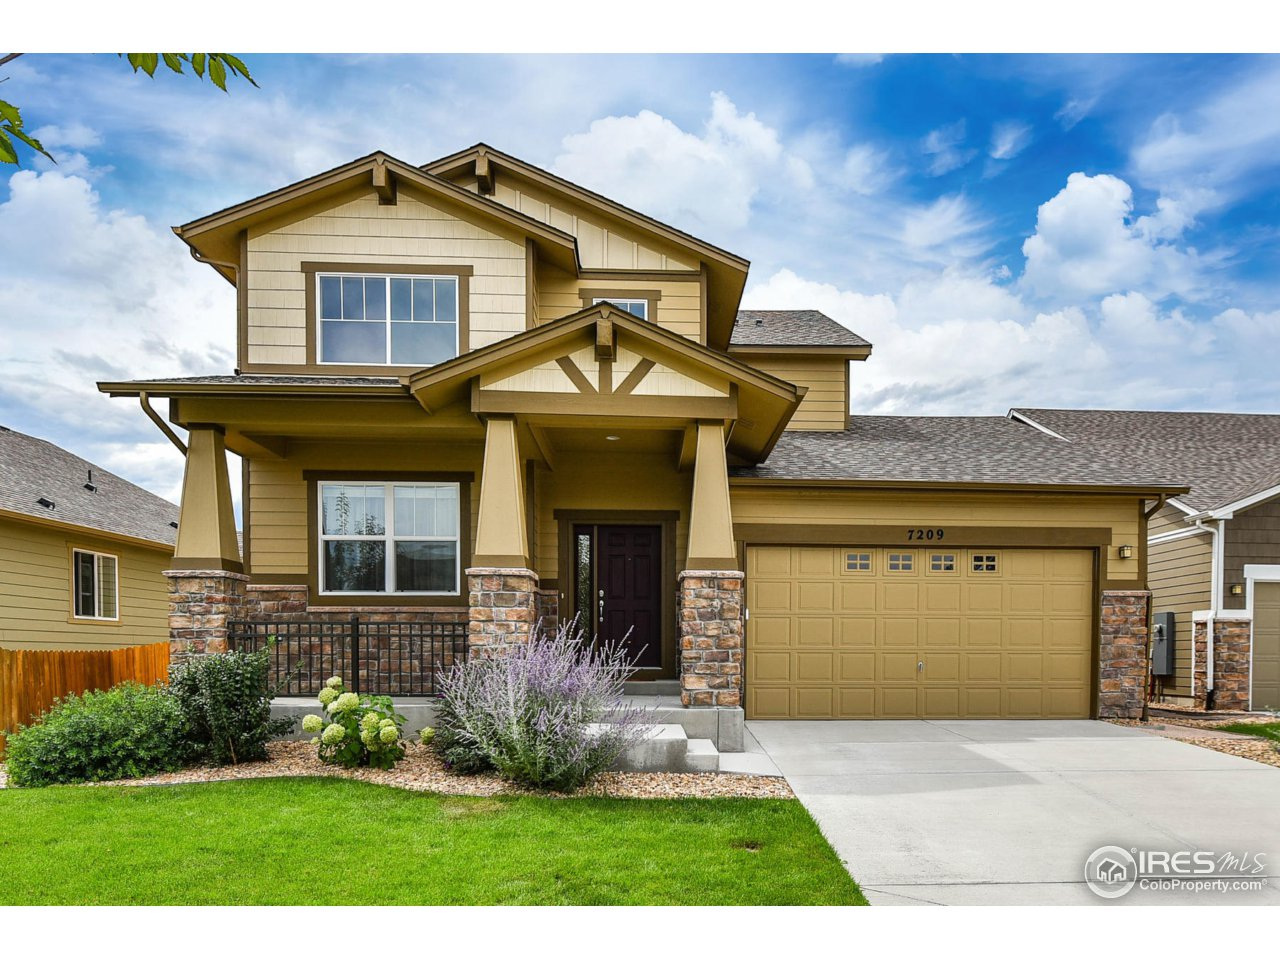 7209 Crooked Arrow Ln, Fort Collins CO 80525